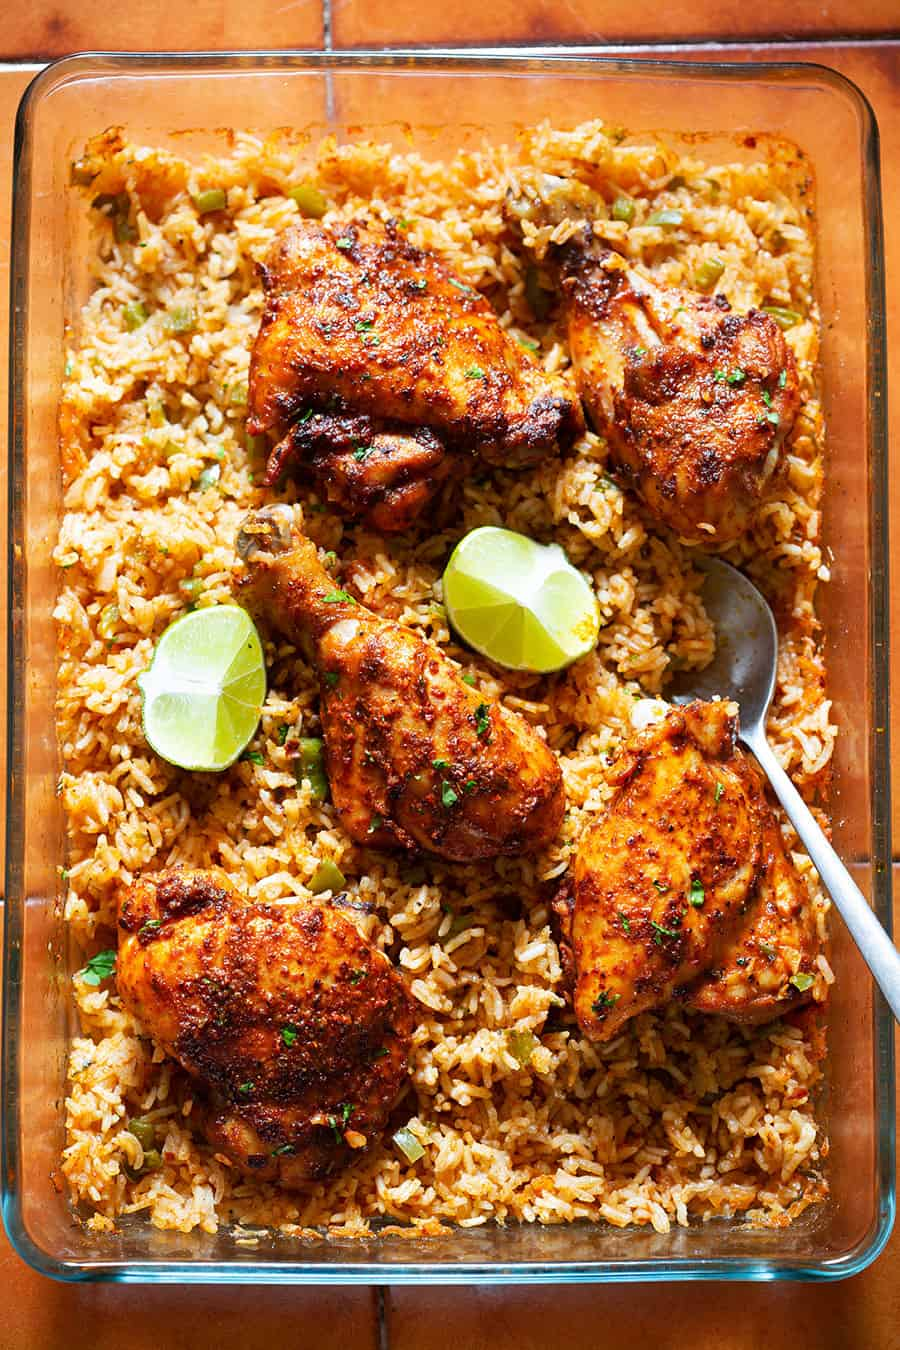 Baked chicken over rice Mexican style on a baking dish.